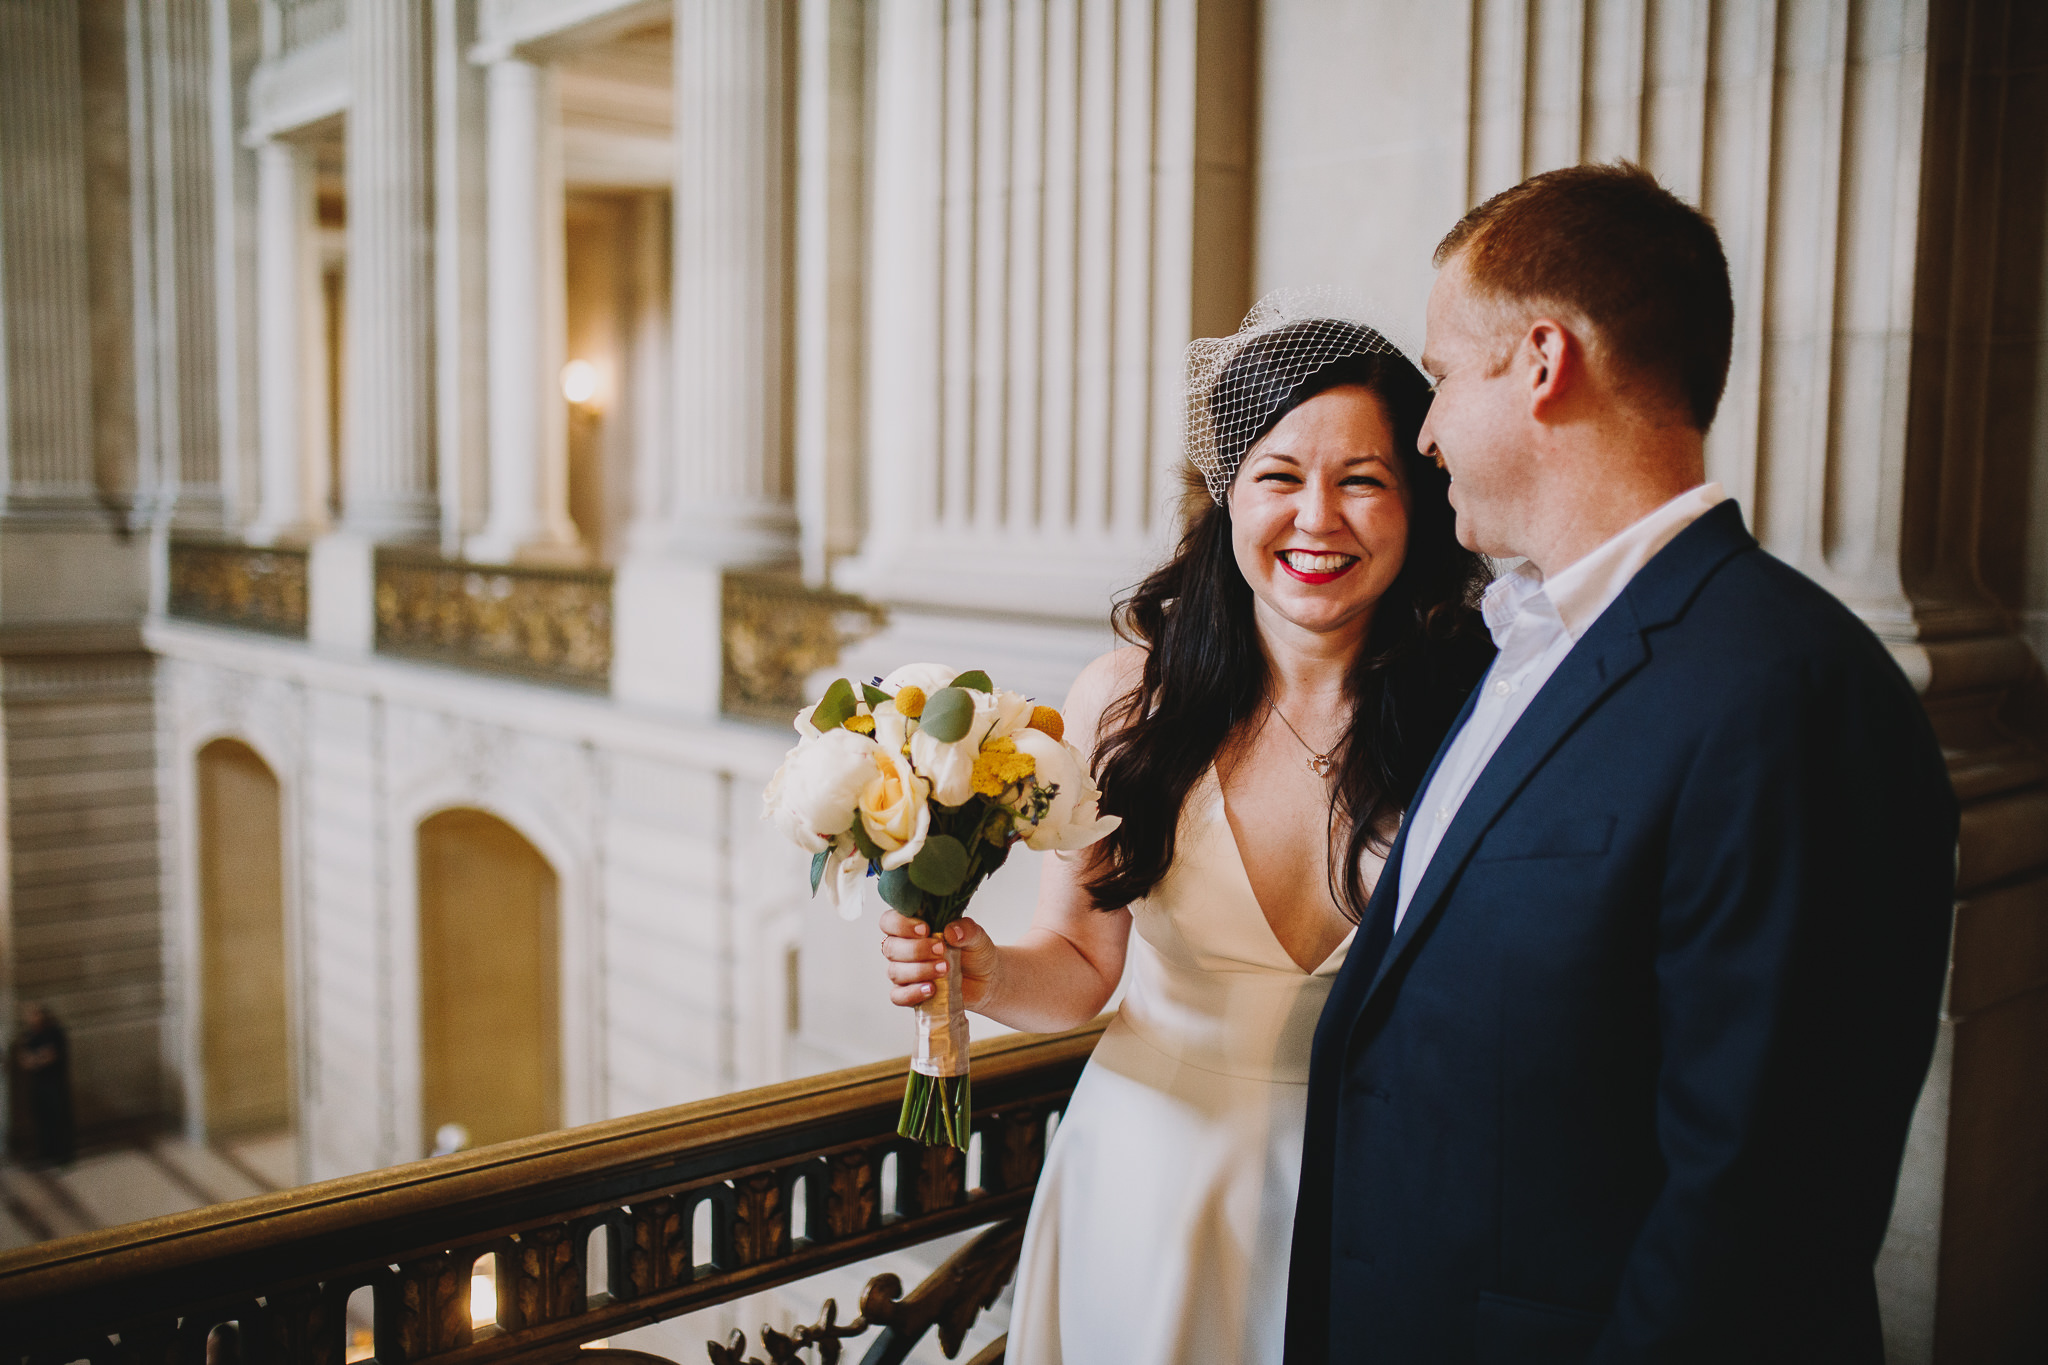 Archer Inspired Photography SF City Hall Elopement Wedding Lifestyle Documentary Affordable Photographer-68.jpg